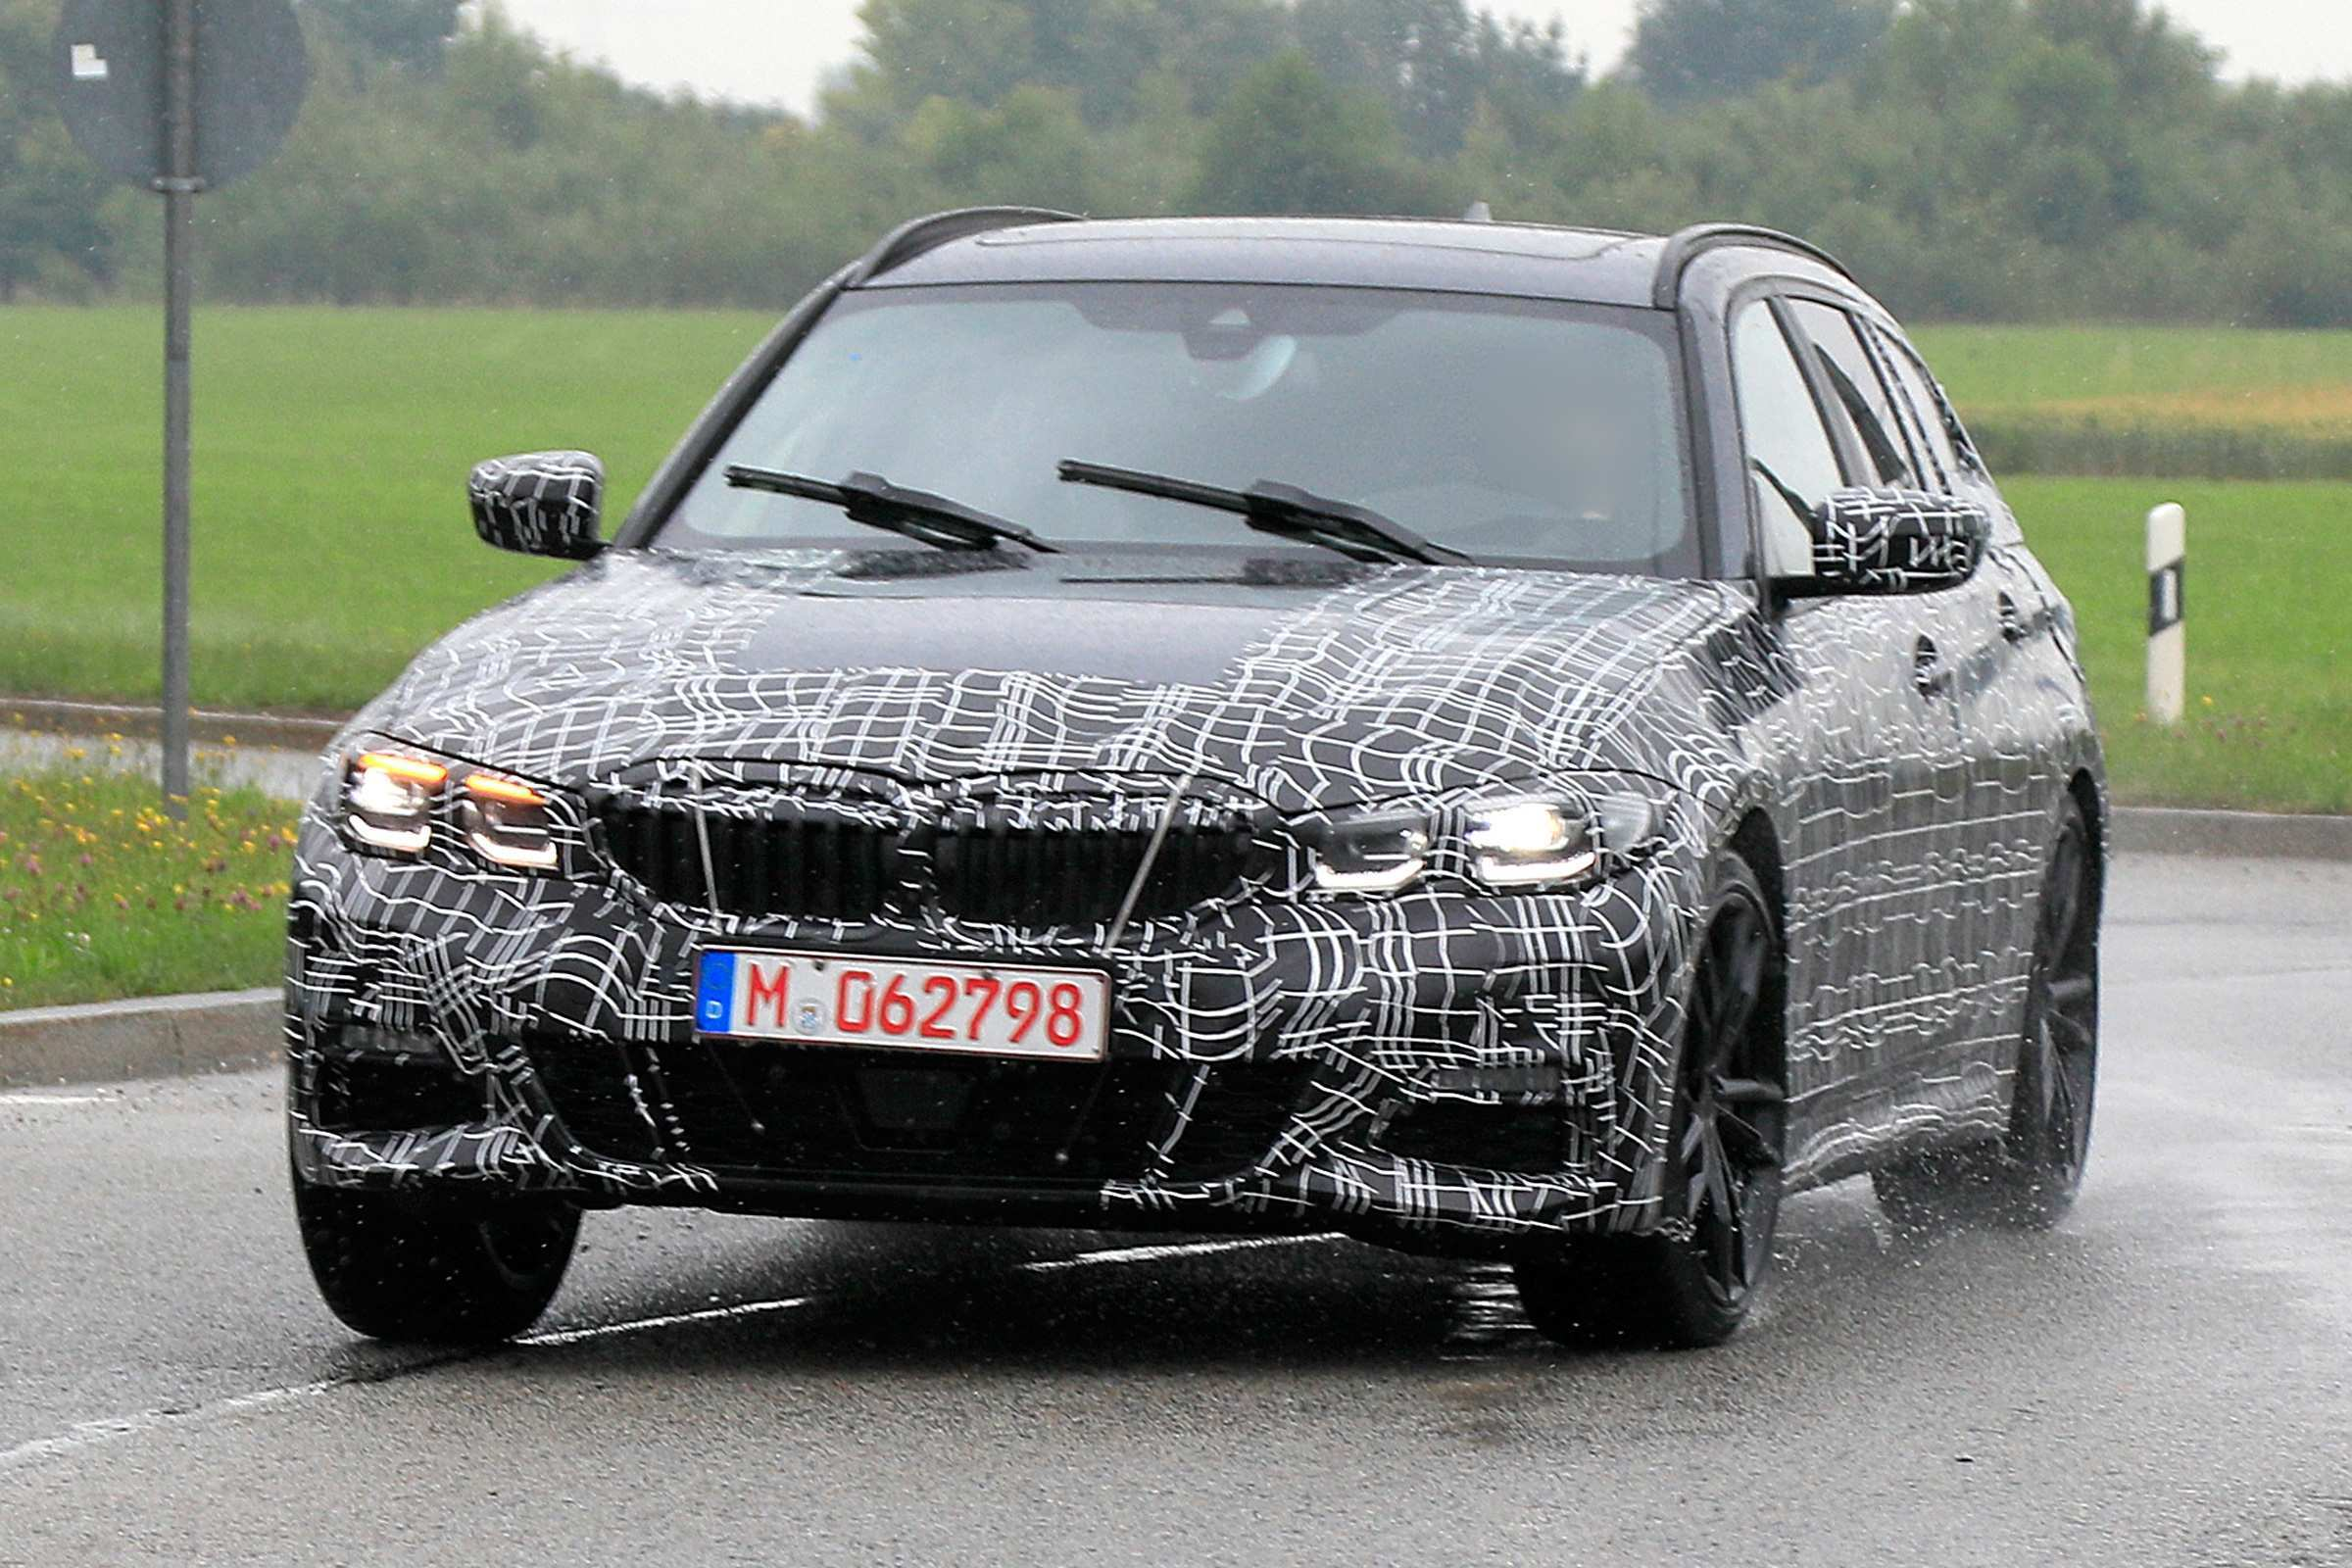 49 A 2019 BMW 3 Series Edrive Phev Spy Shoot